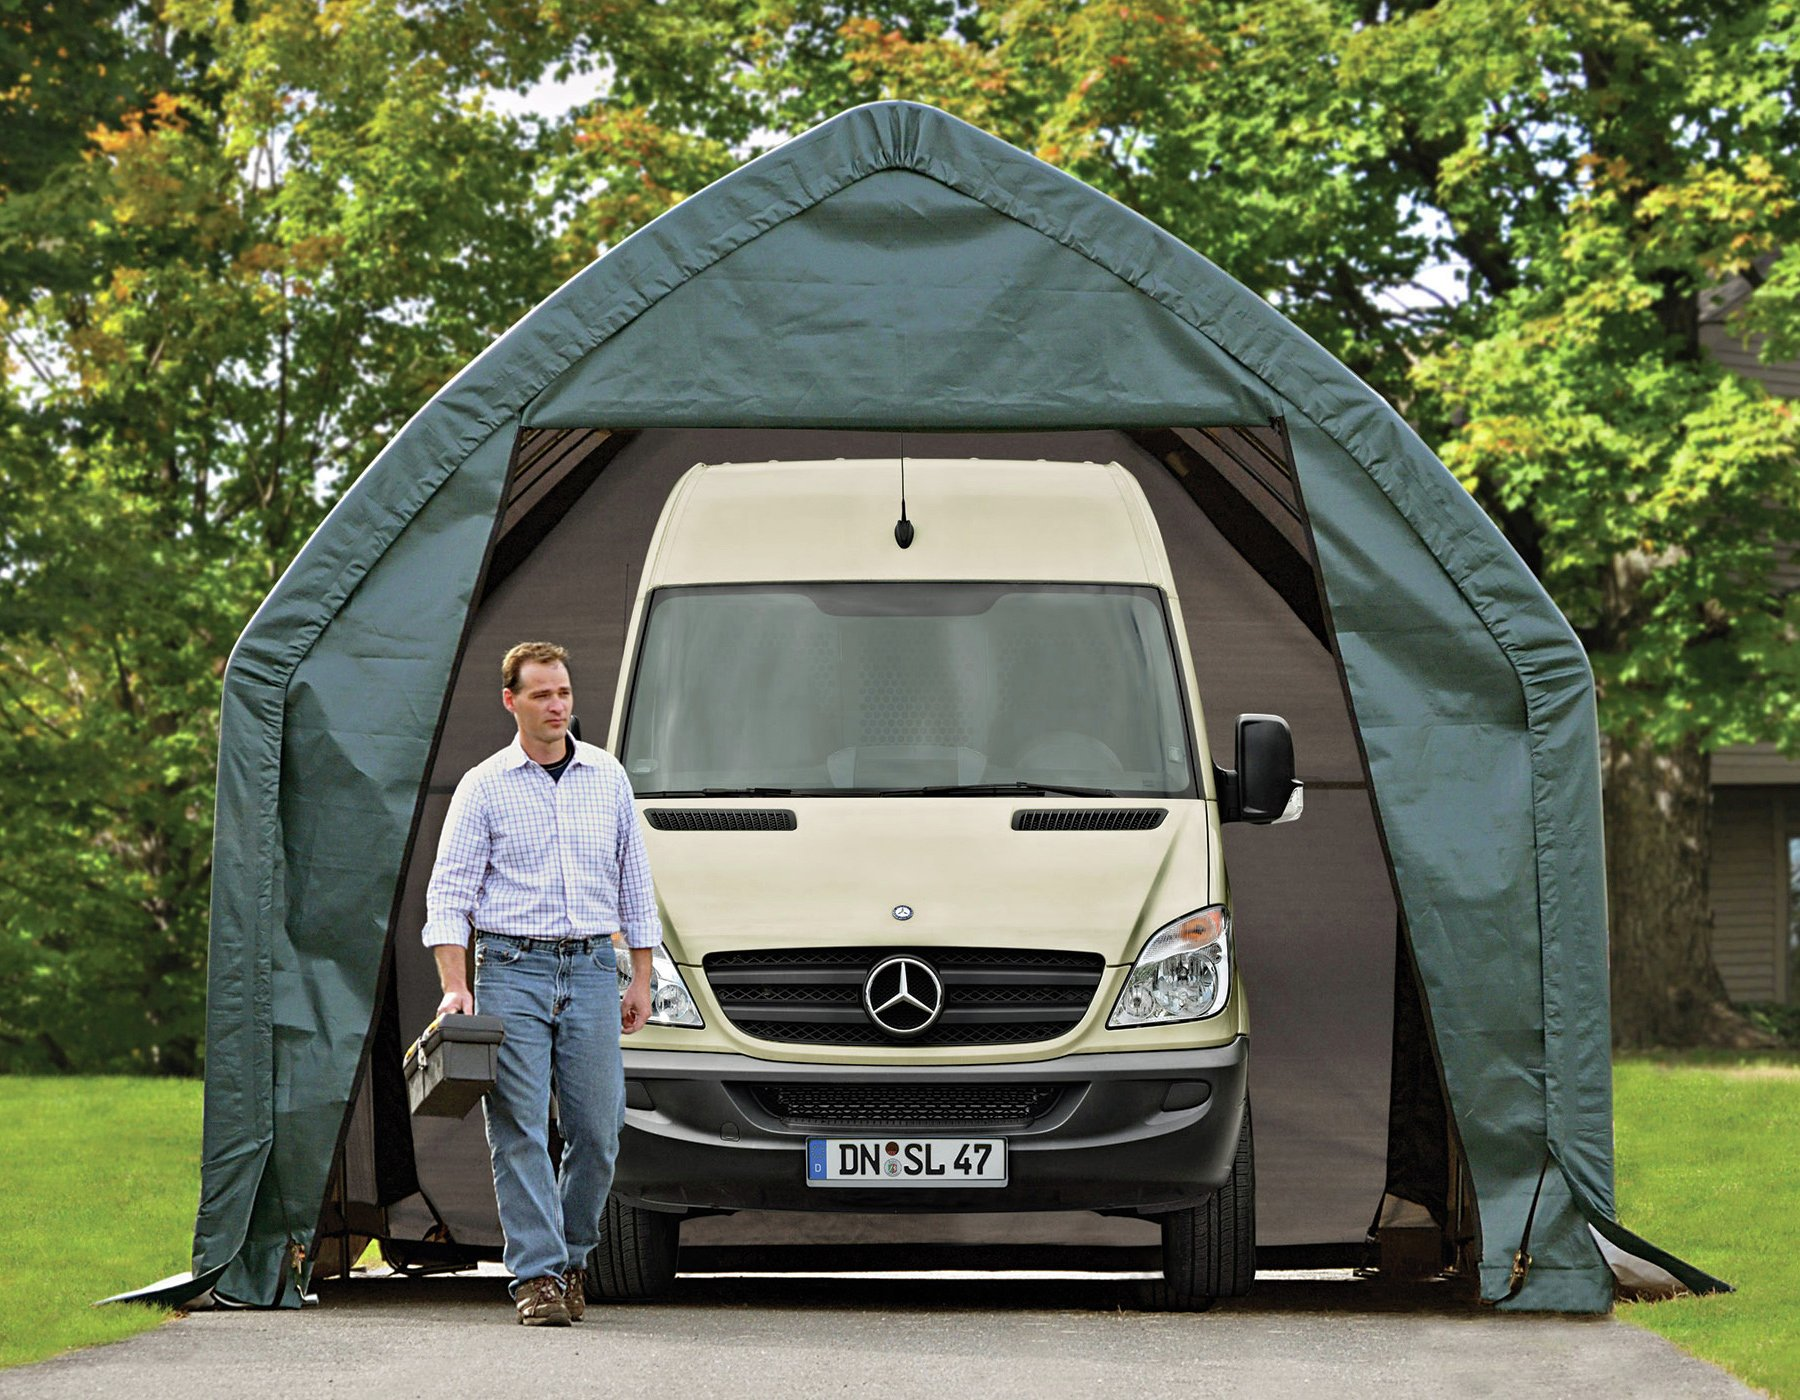 shelter-logic-truck-shelter-13-x-20ft